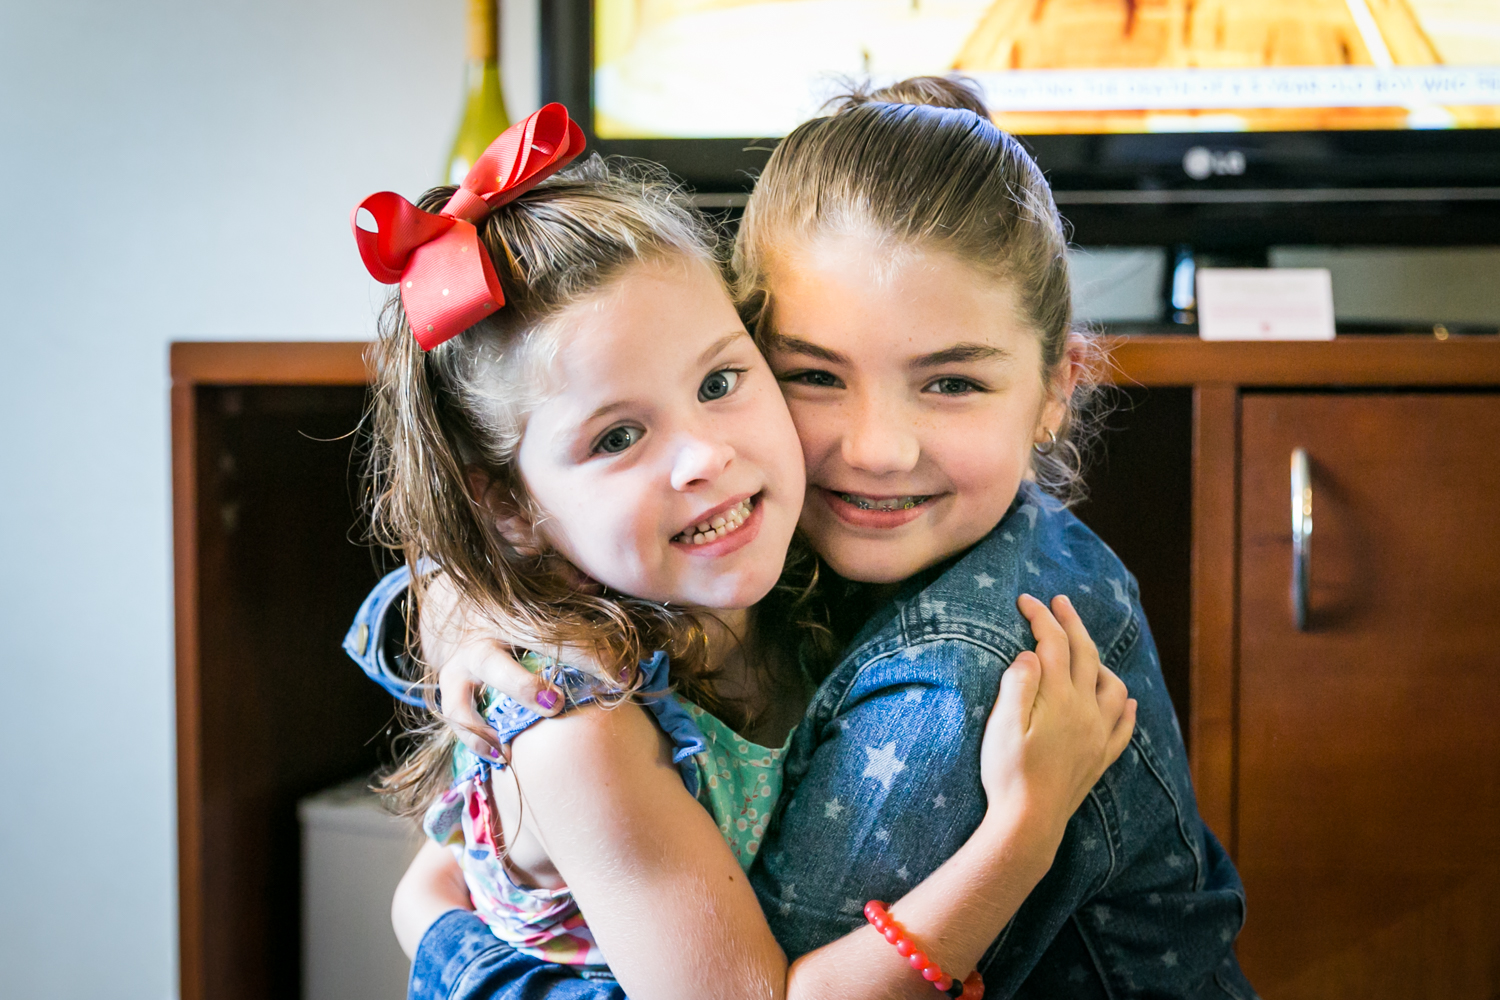 Two little girls hugging in a hotel room